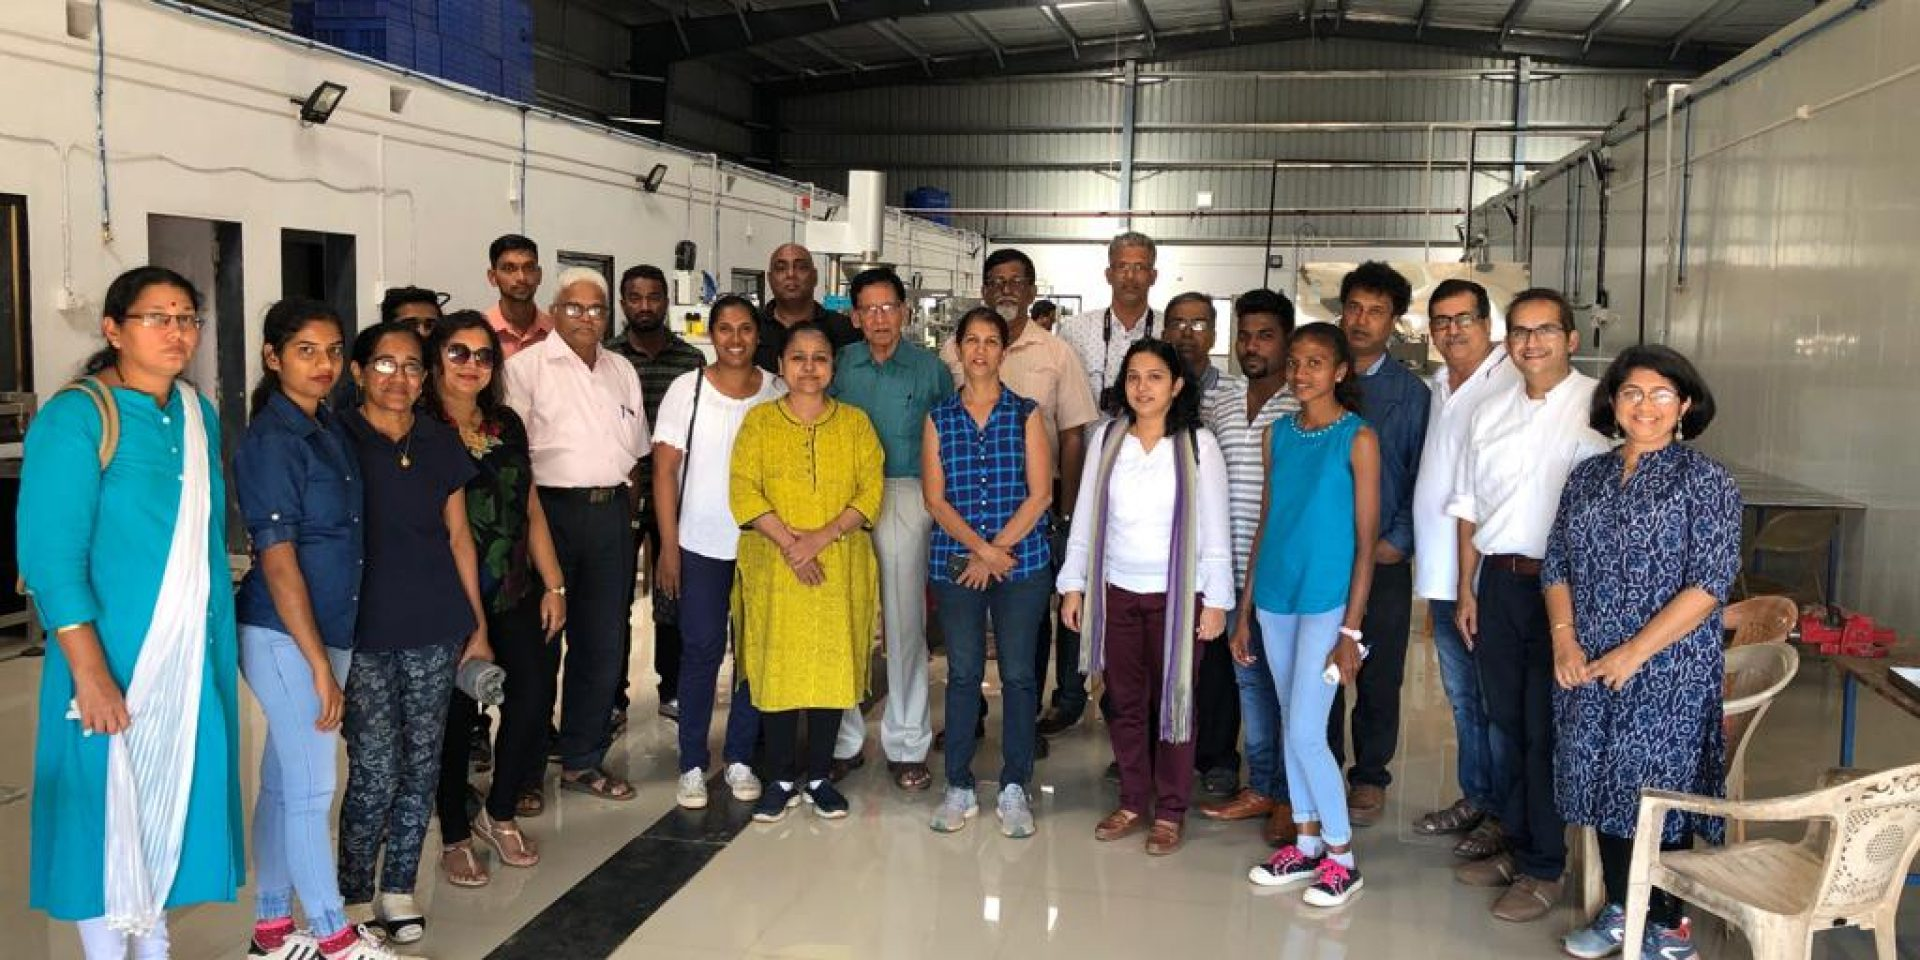 Goa Chamber of Commerce & Industry in association with NABARD - Goa chapter, organised a field visit to a Food Processing Cluster located at Dahibhav, Devgad, Maharashtra on Saturday, 16th Feb 2019.